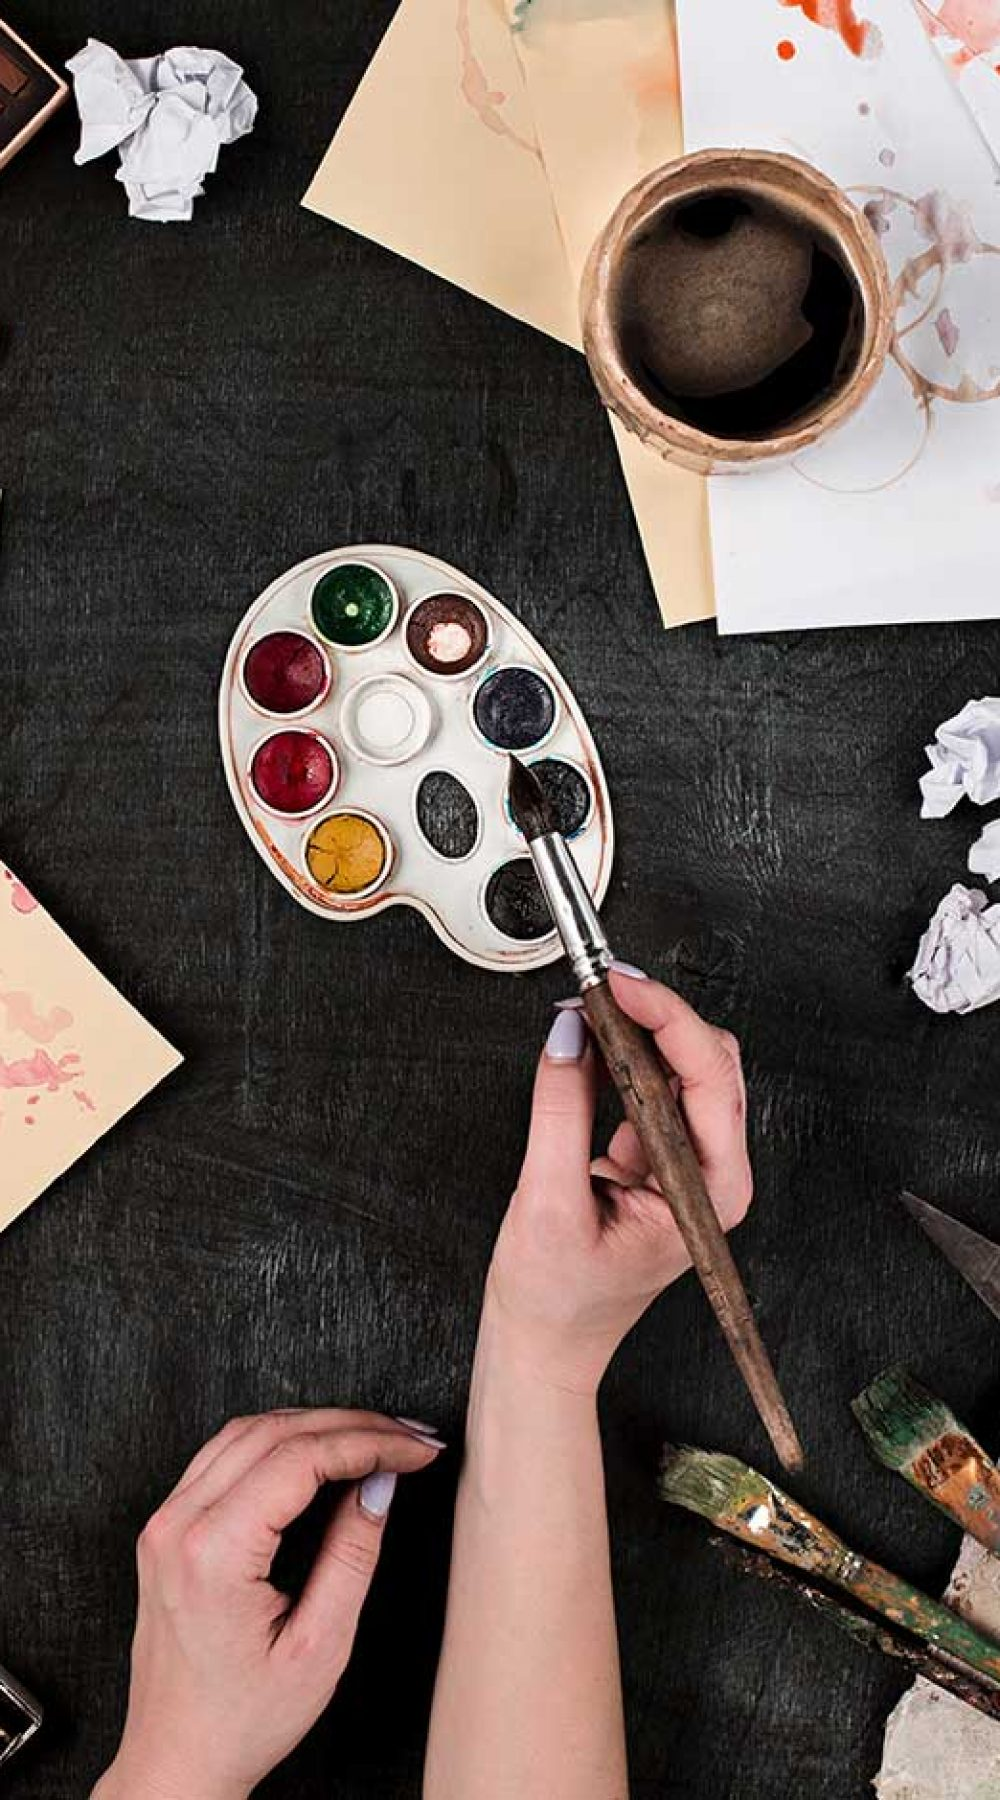 paint-brushes-and-tubes-of-oil-paints-on-wooden-ba-small.jpg